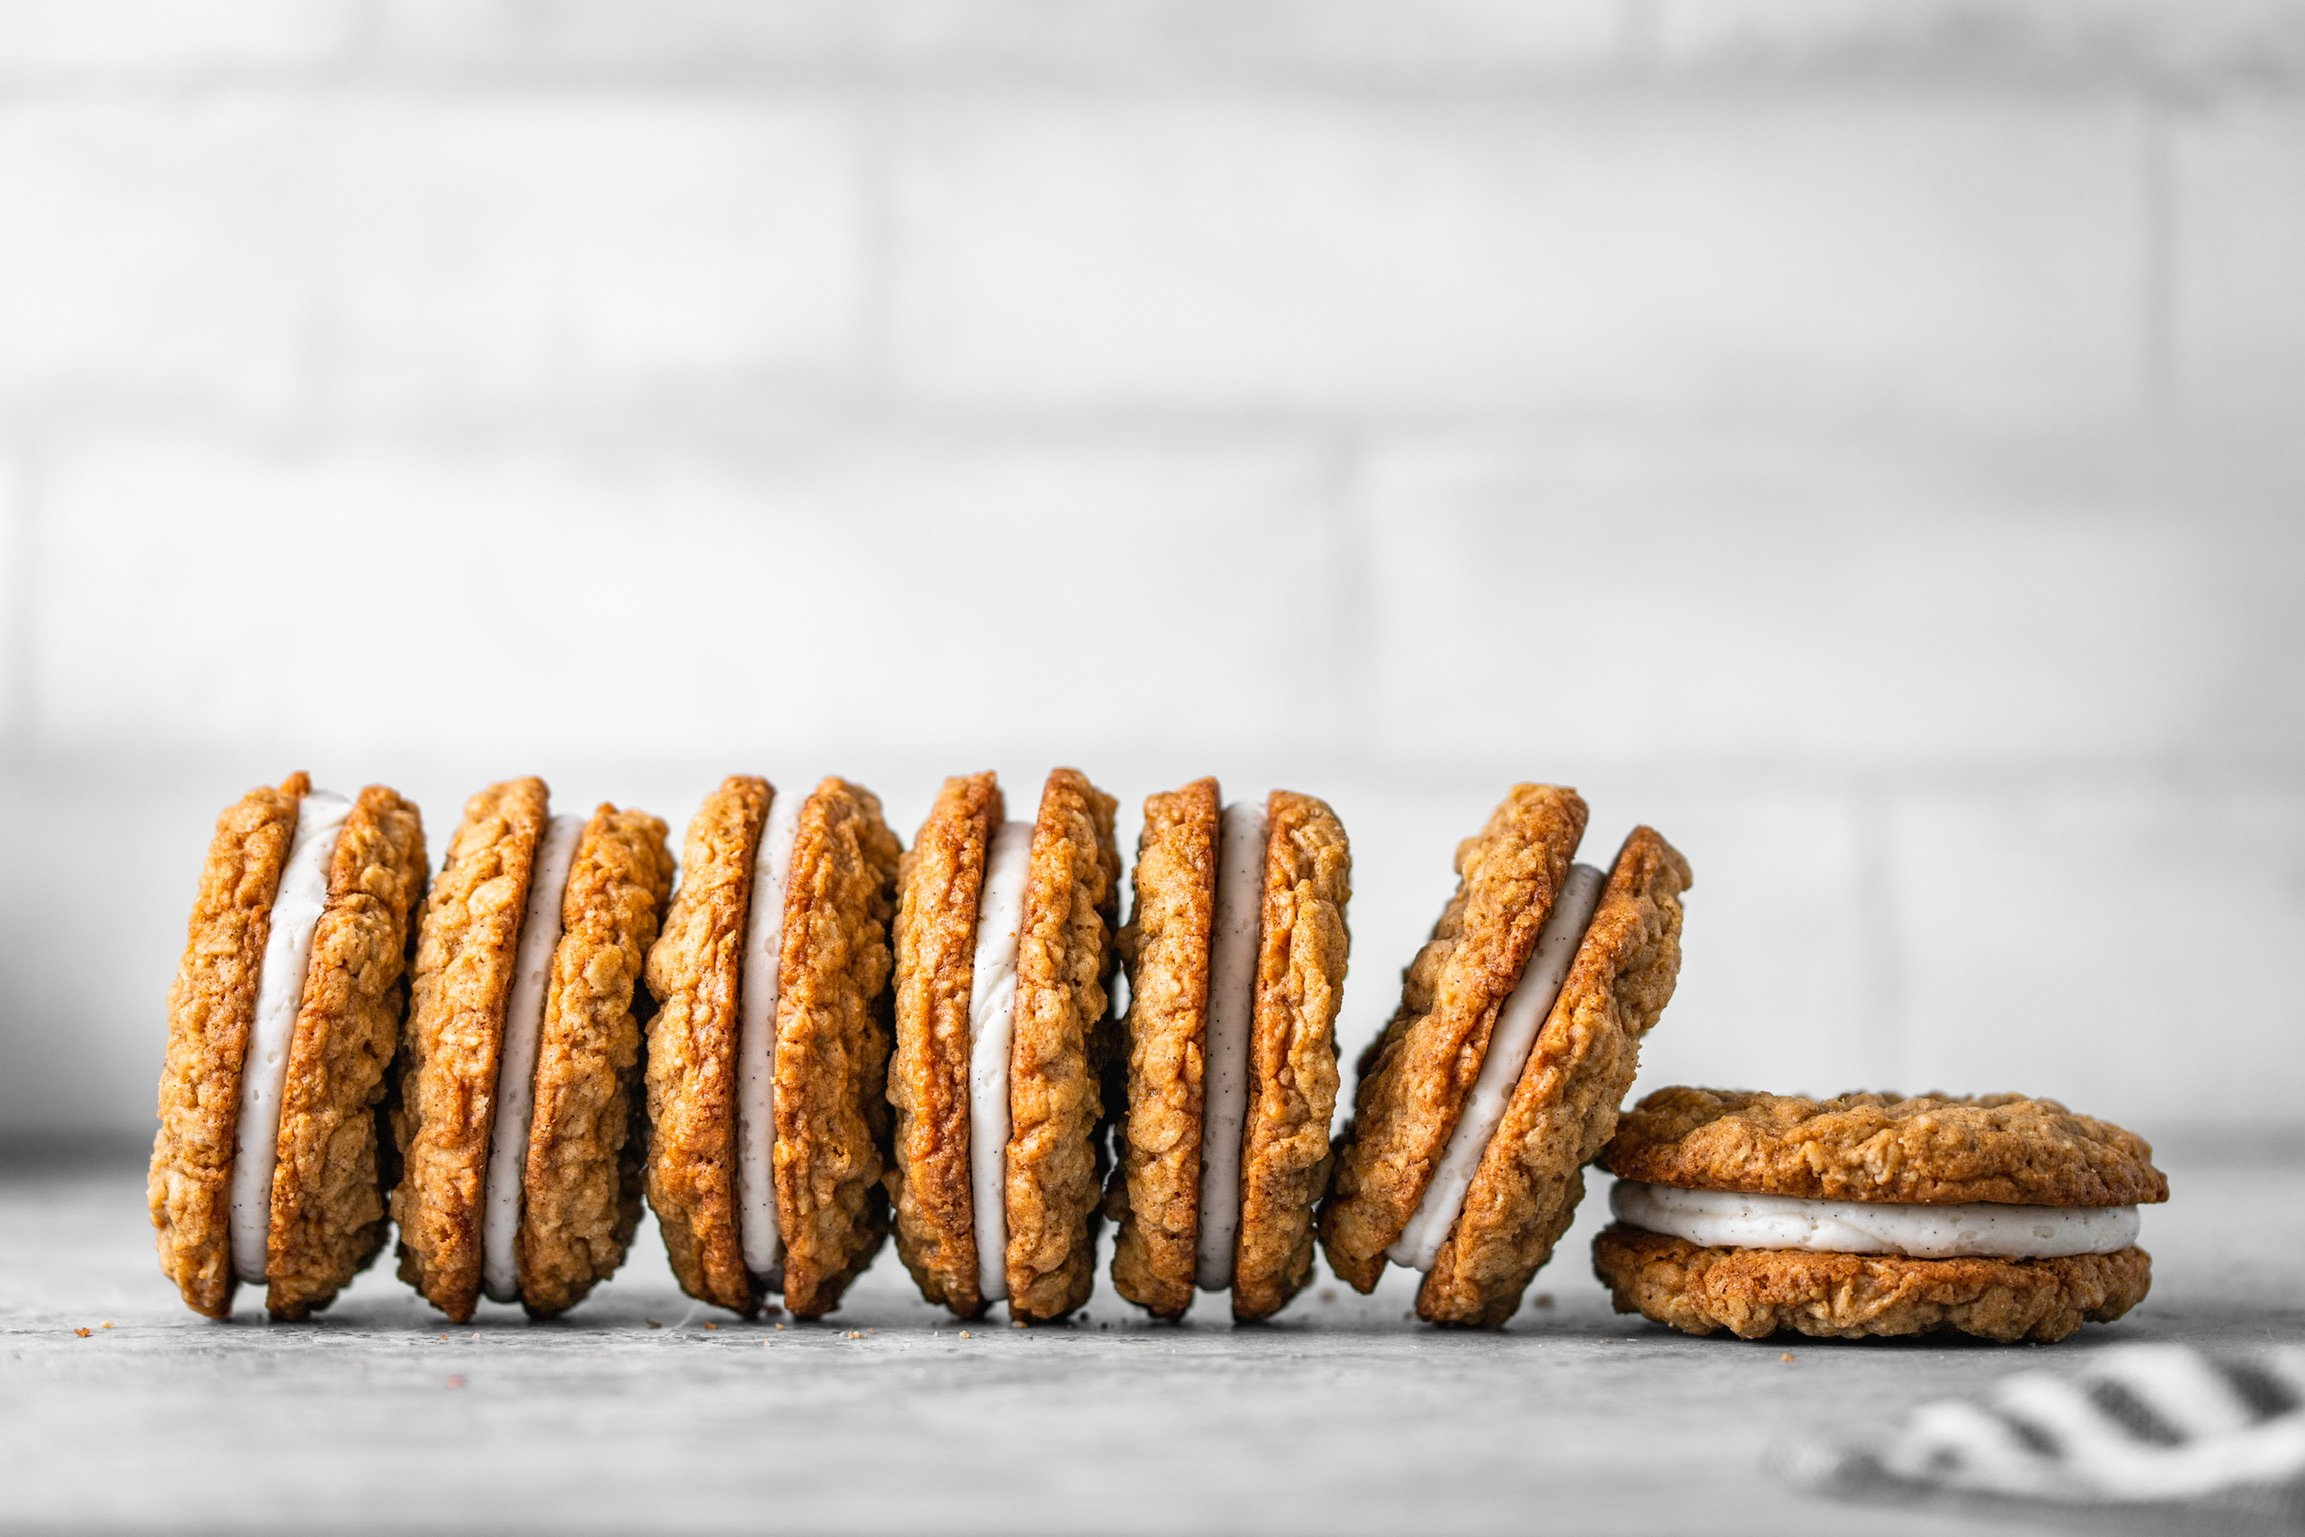 Homemade Oatmeal Creme Pies with Vanilla Bean Creme Filling